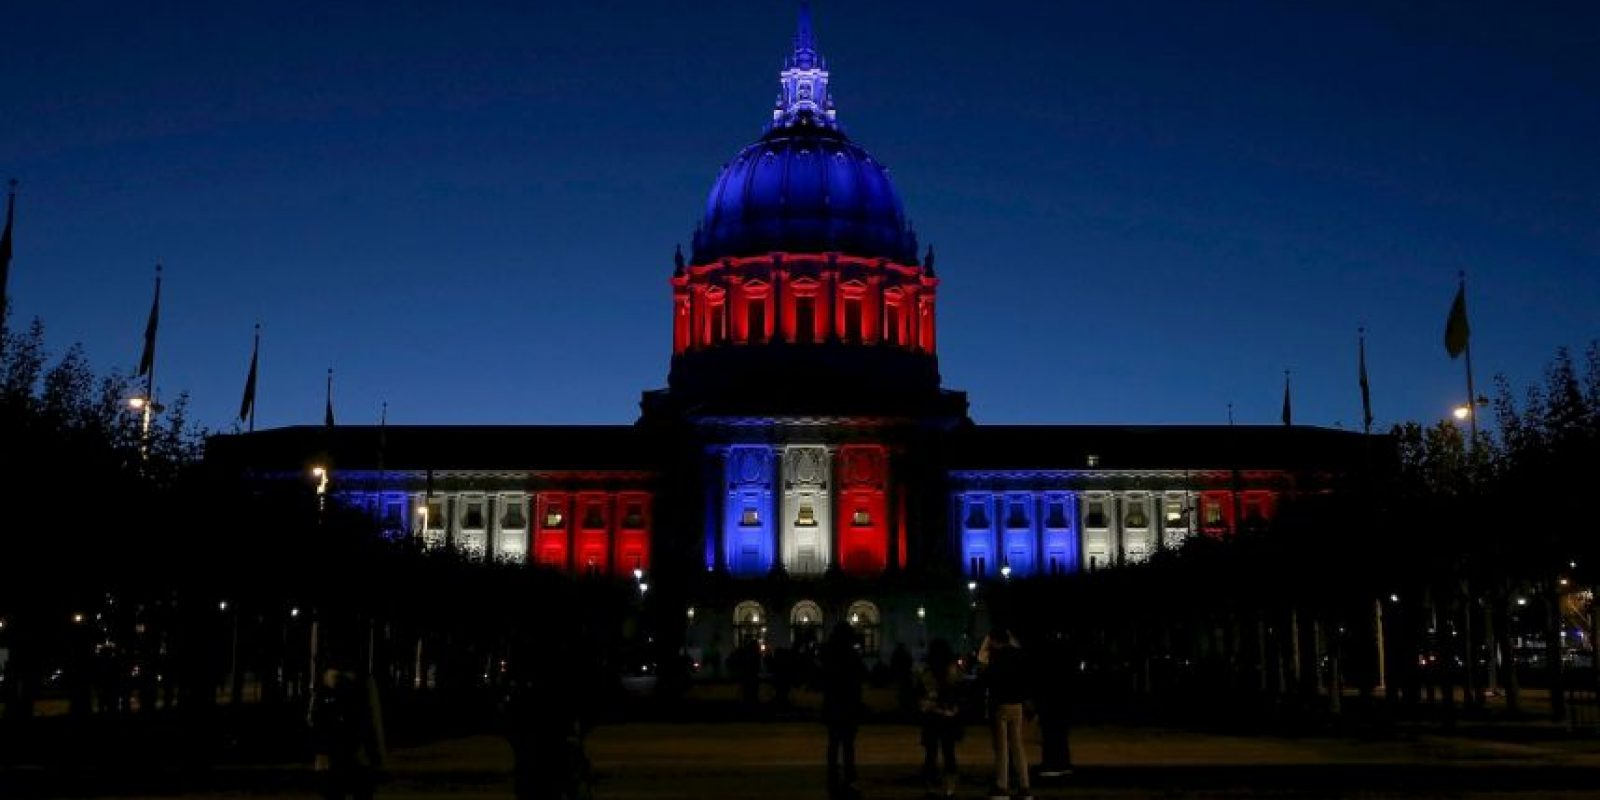 ESTADOS UNIDOS: Palacio de Gobierno de San Francisco. Foto: Getty Images